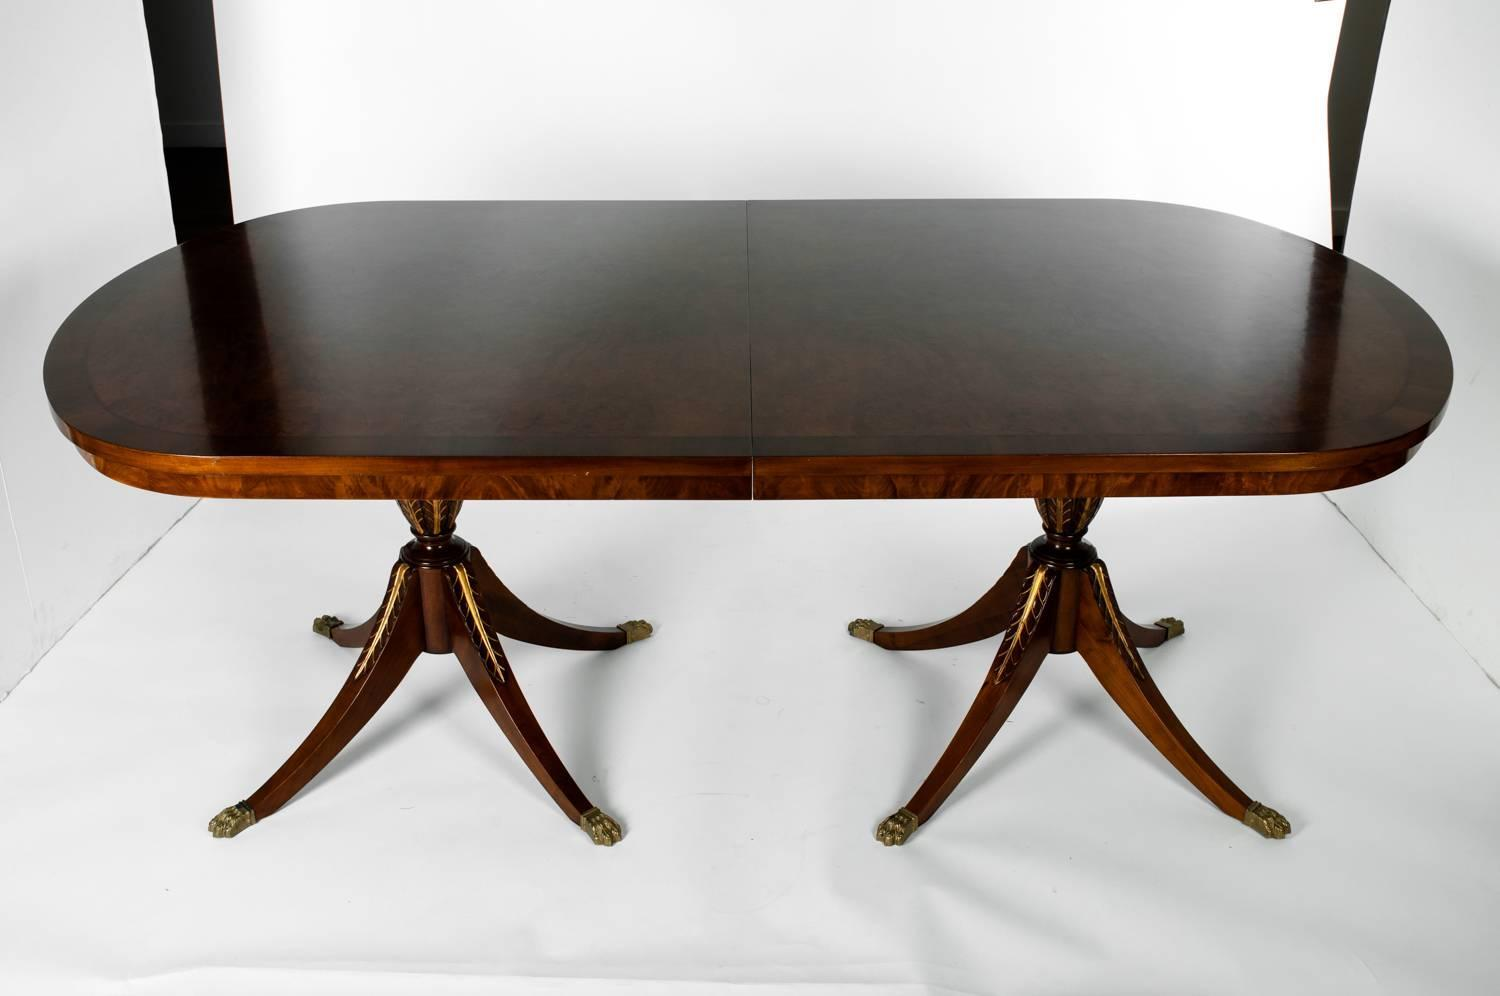 Vintage European Dinning Table With Two Leaf Extensions For Sale At 1stdibs